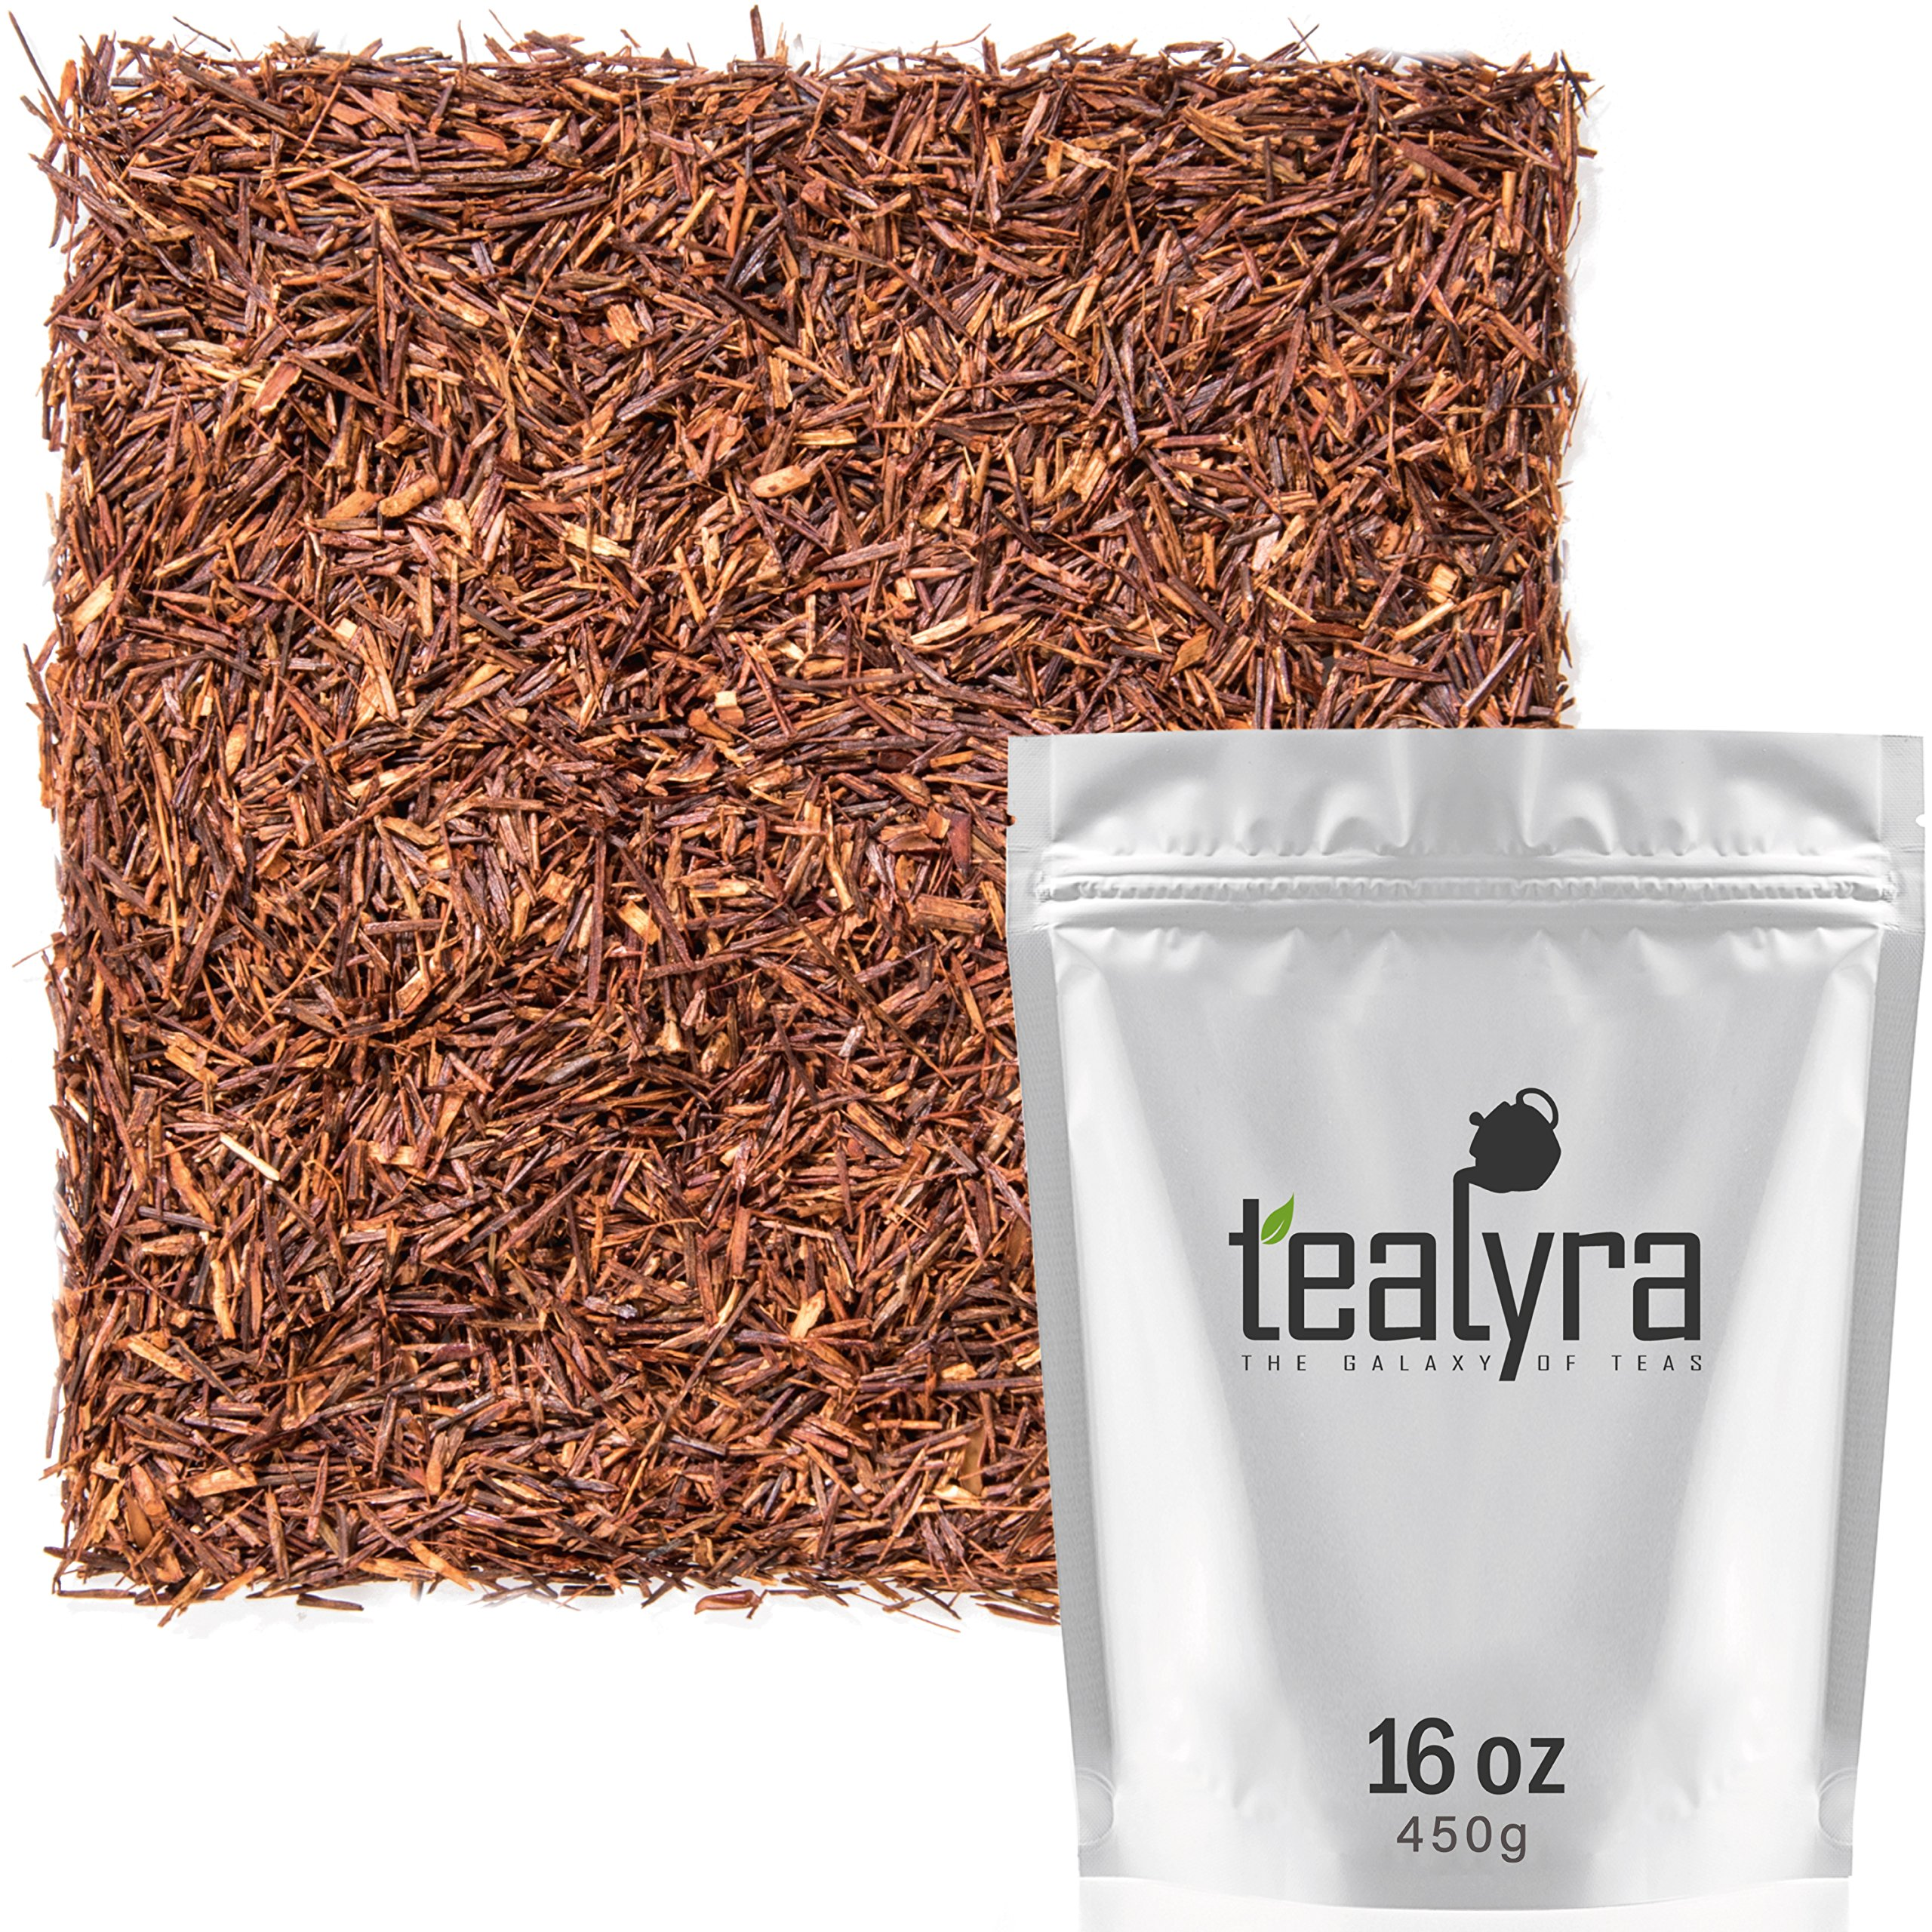 Tealyra - Pure Rooibos Red Herbal Tea - African Red Bush Loose Leaf Tea - High in Antioxidants - Relax - Detox - Low Blood Pressure - Kids Welcome - Caffeine-Free - Organically Grown - 450g (16-ounce) by Tealyra